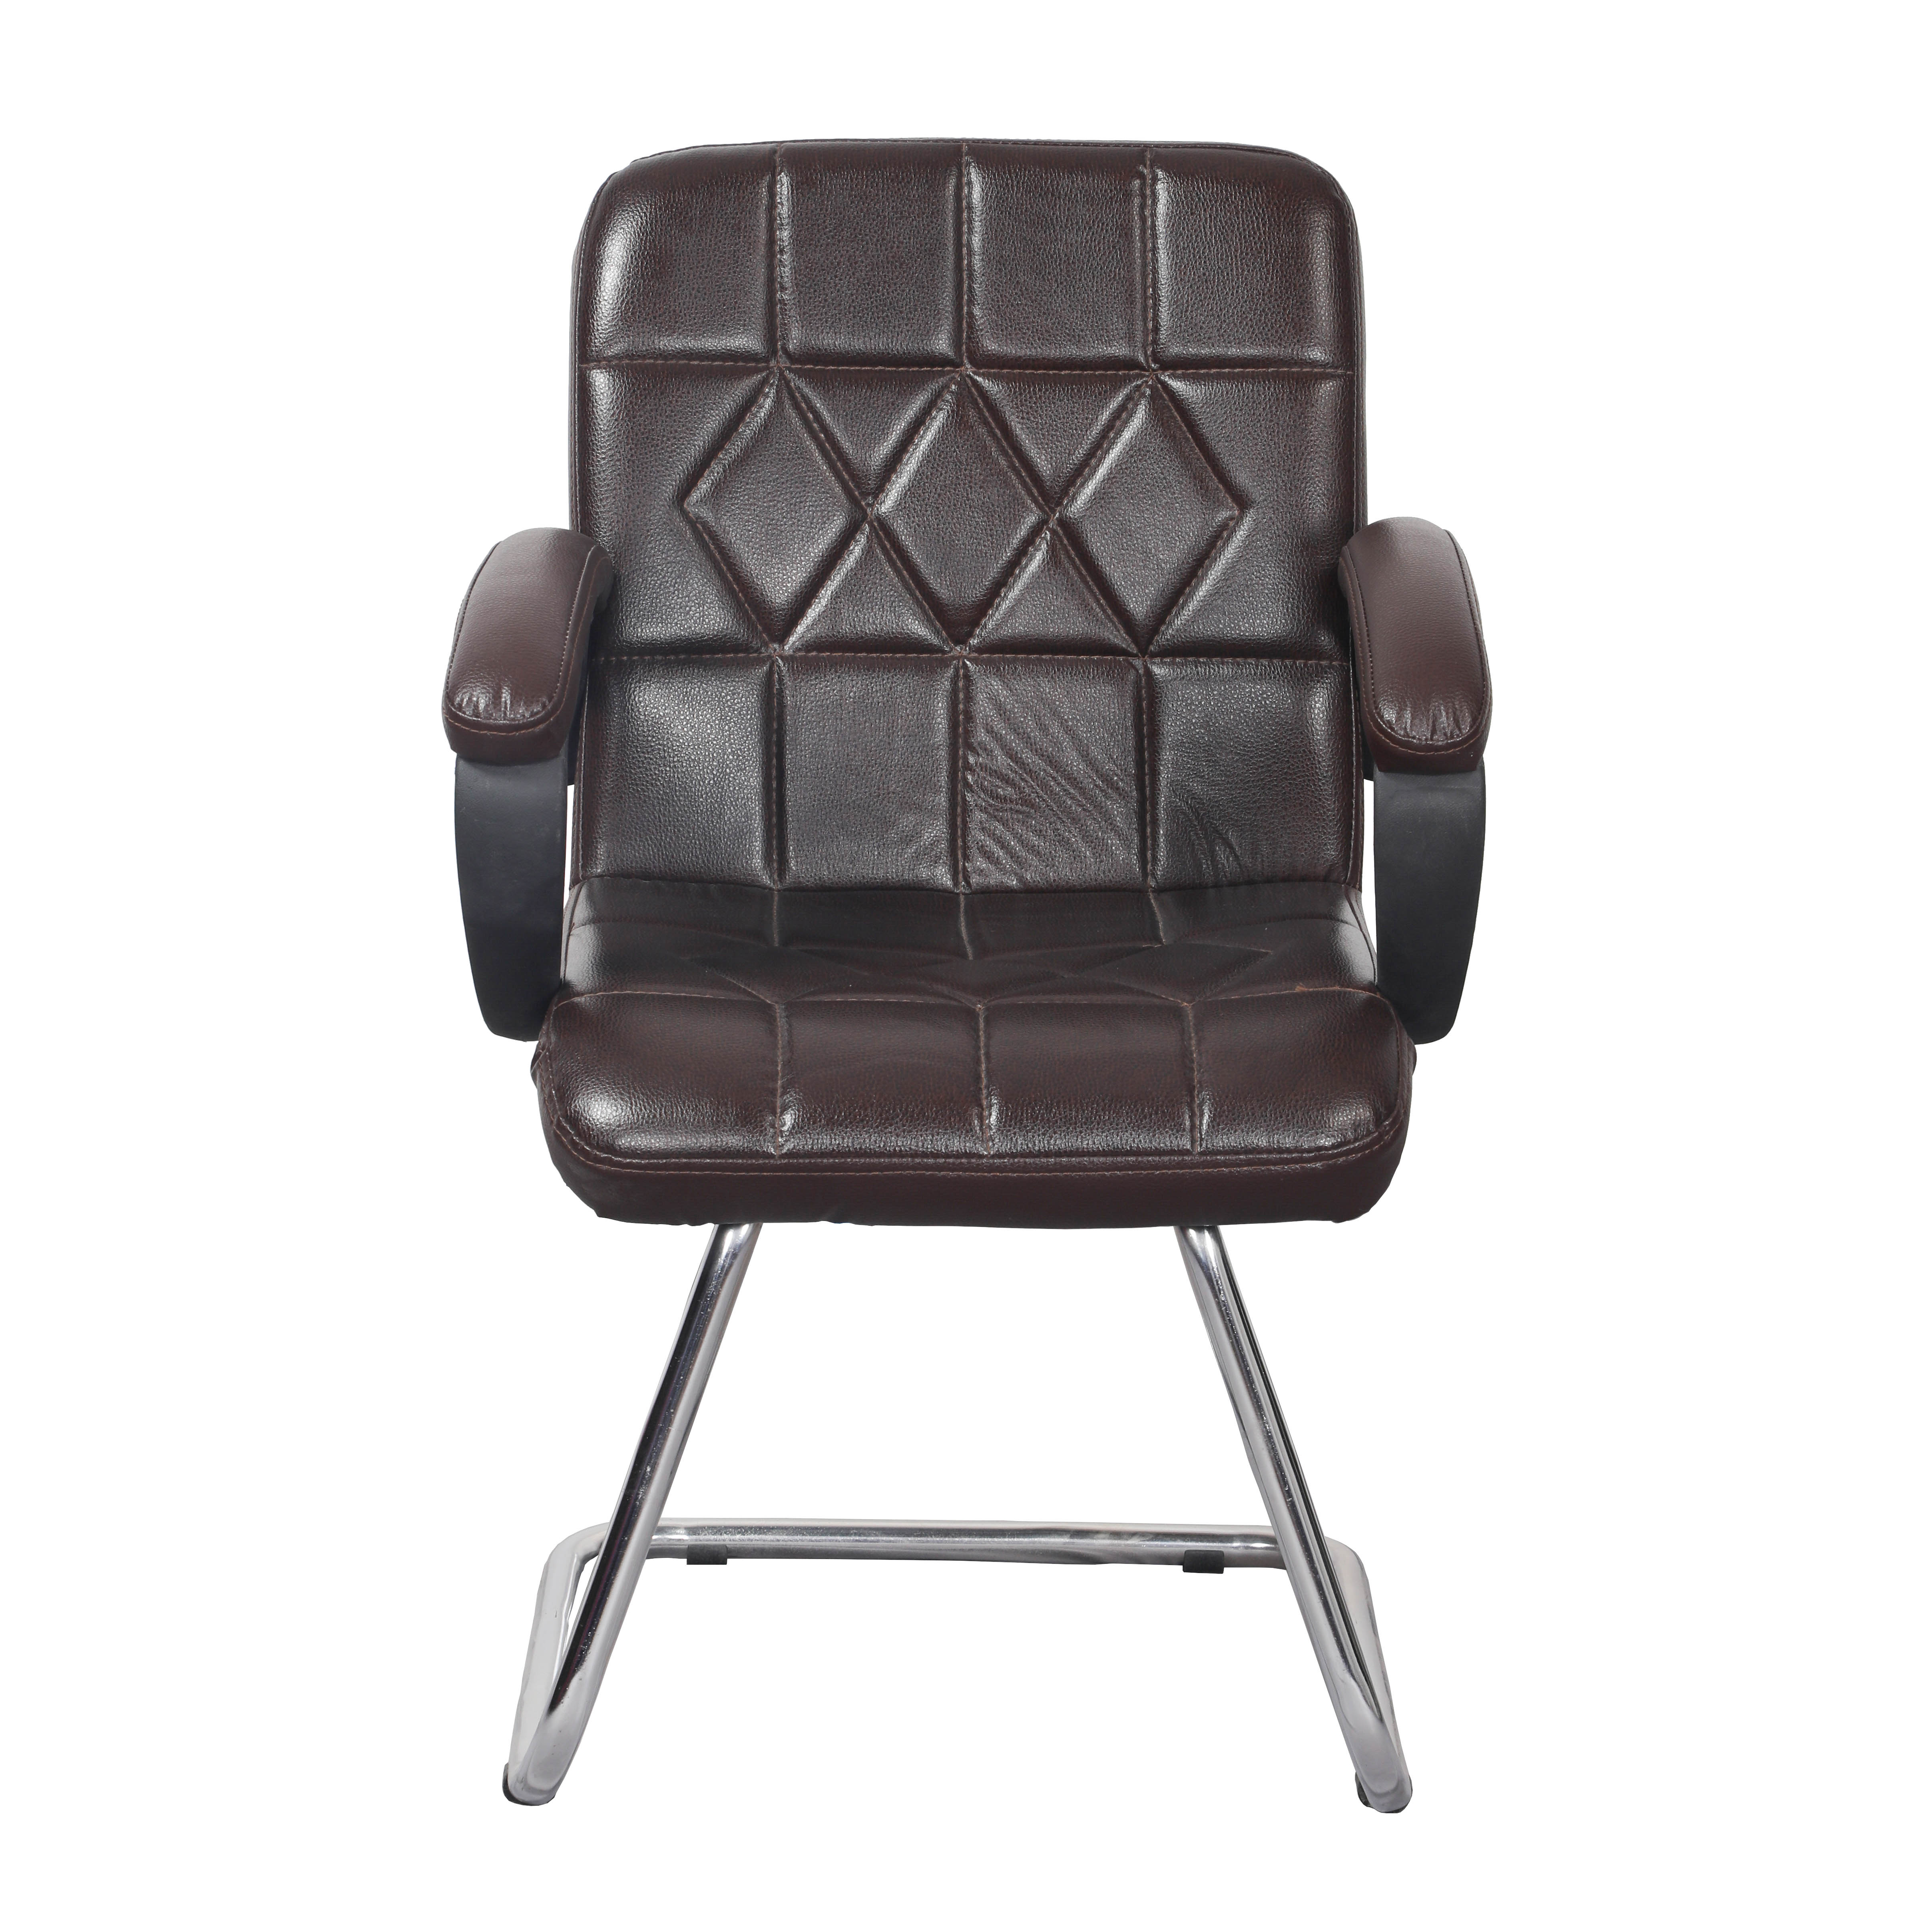 revolving chair manufacturers in ulhasnagar ski lift chairs for sale marketplace suppliers buyers ciitrade